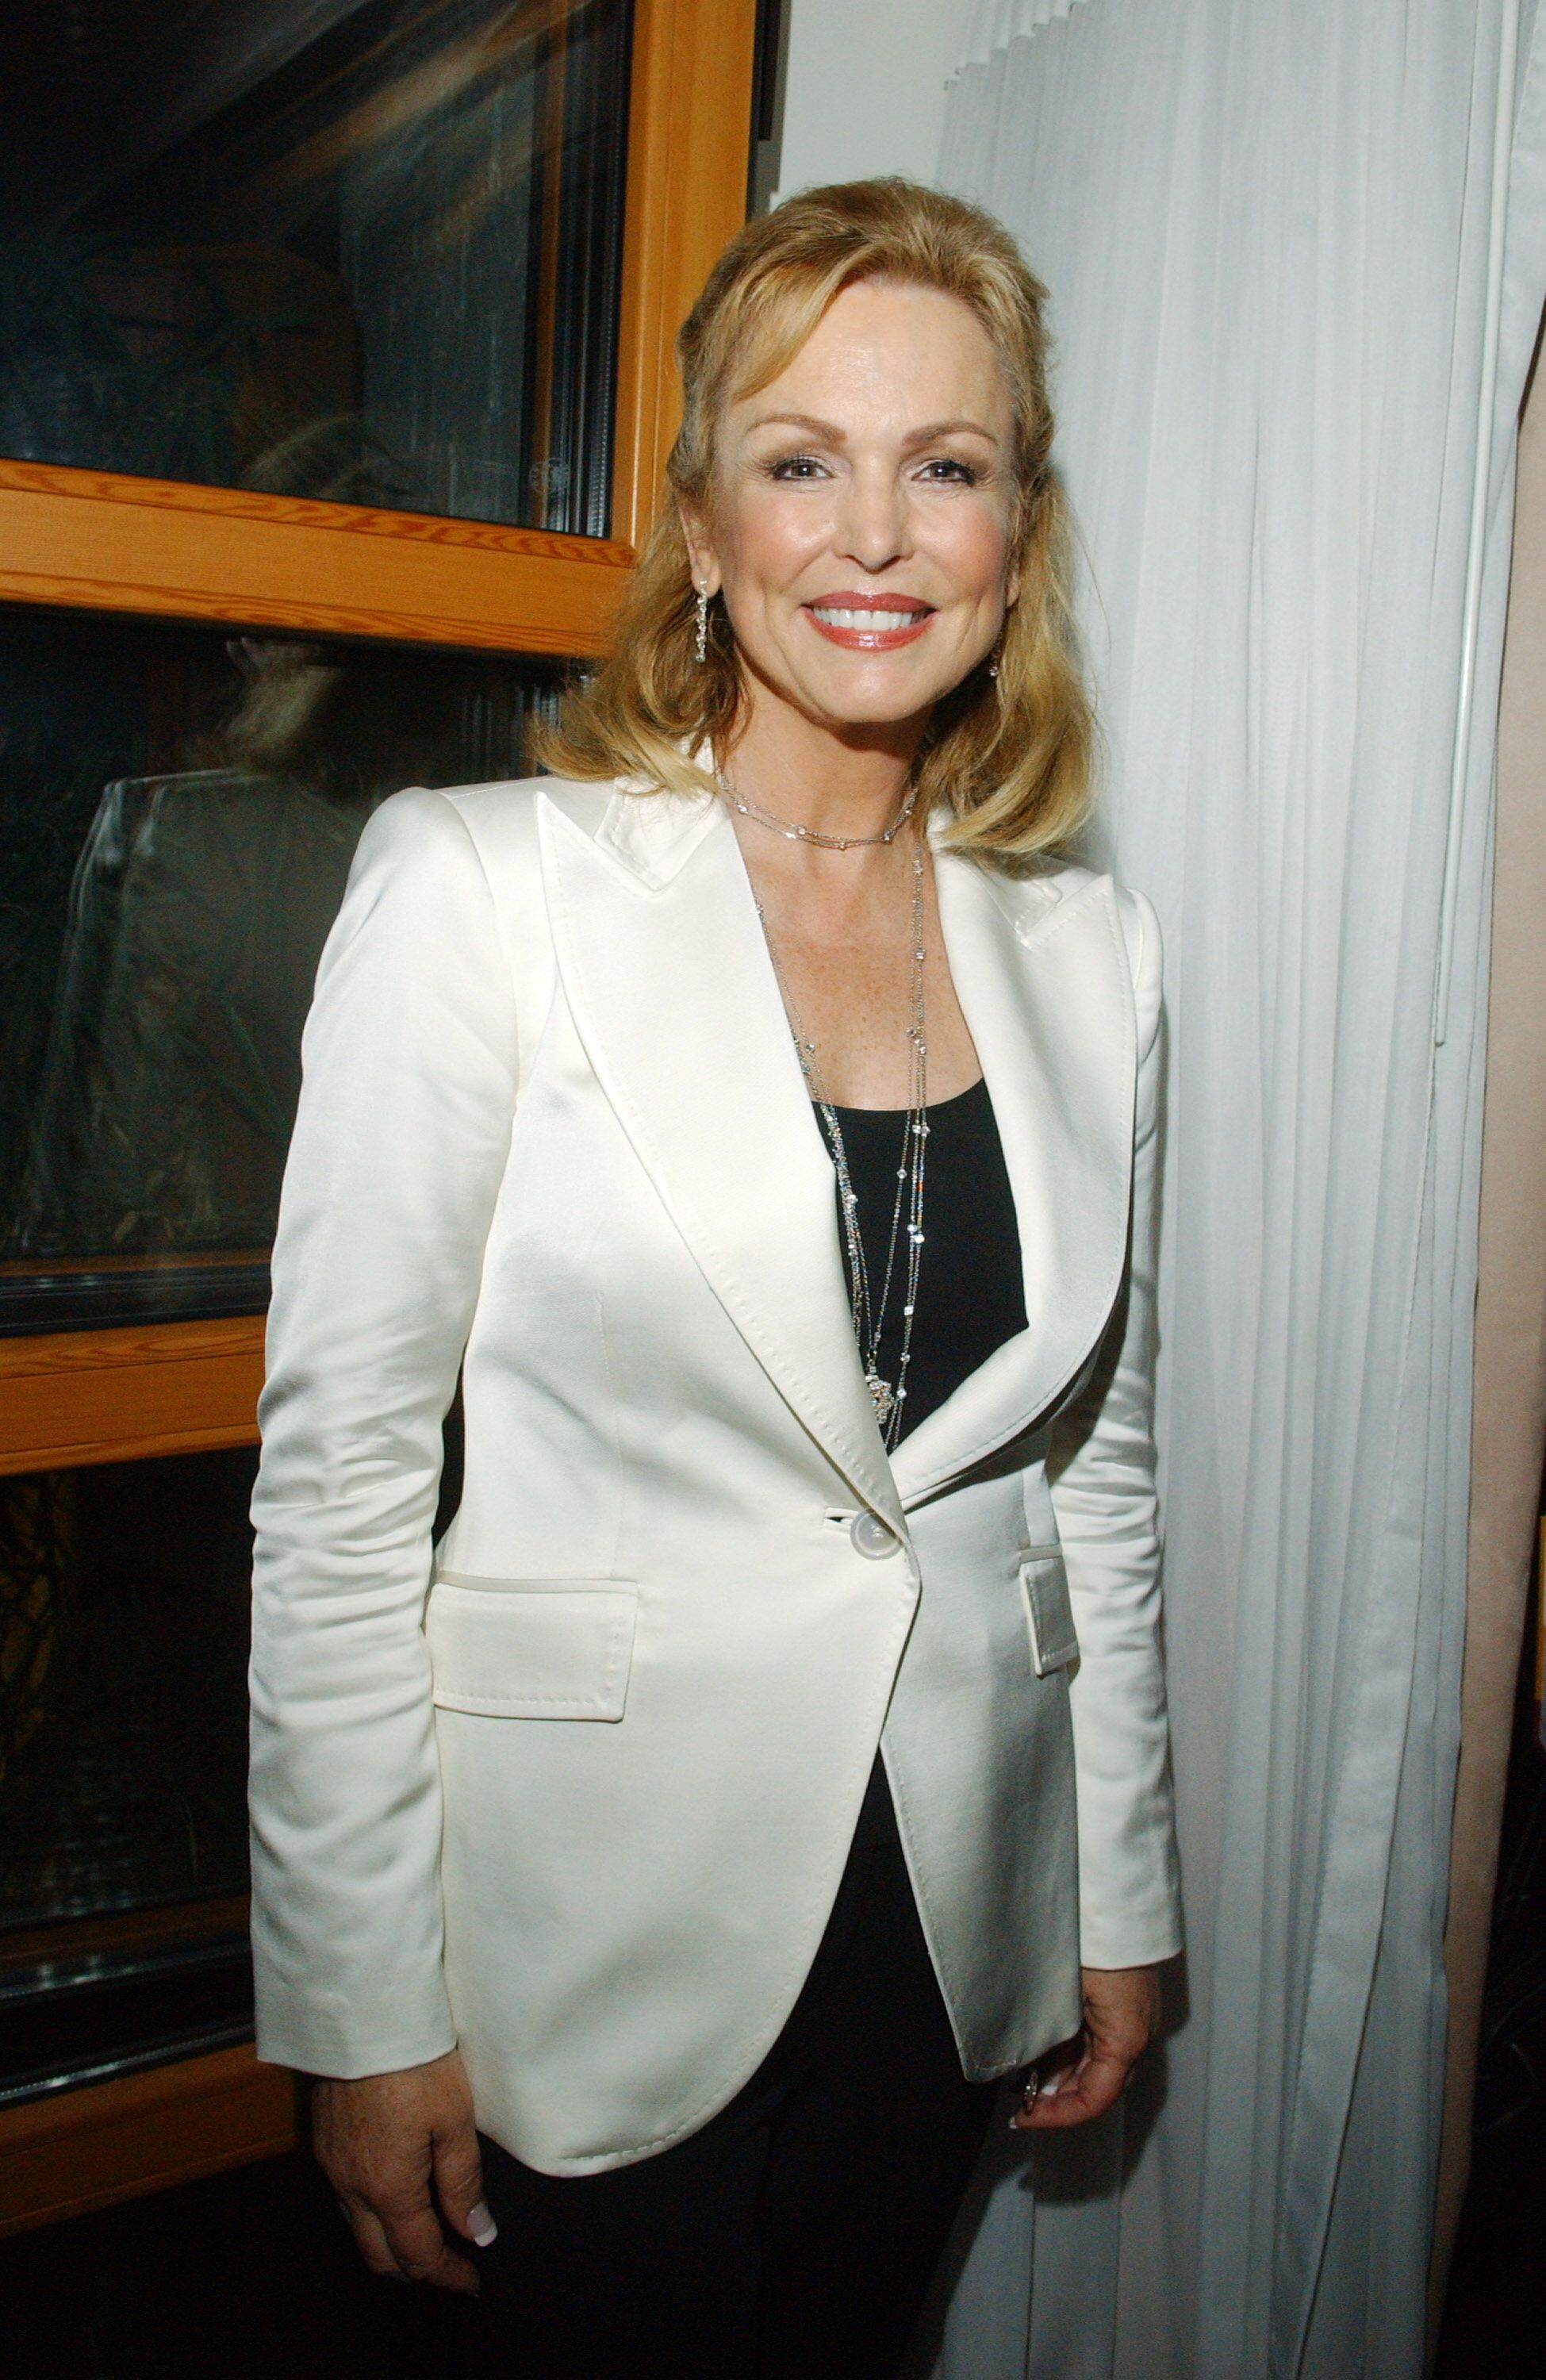 Phyllis George at the Miss America 2007 Contestants Dinner in Hollywood   Source: Getty Images